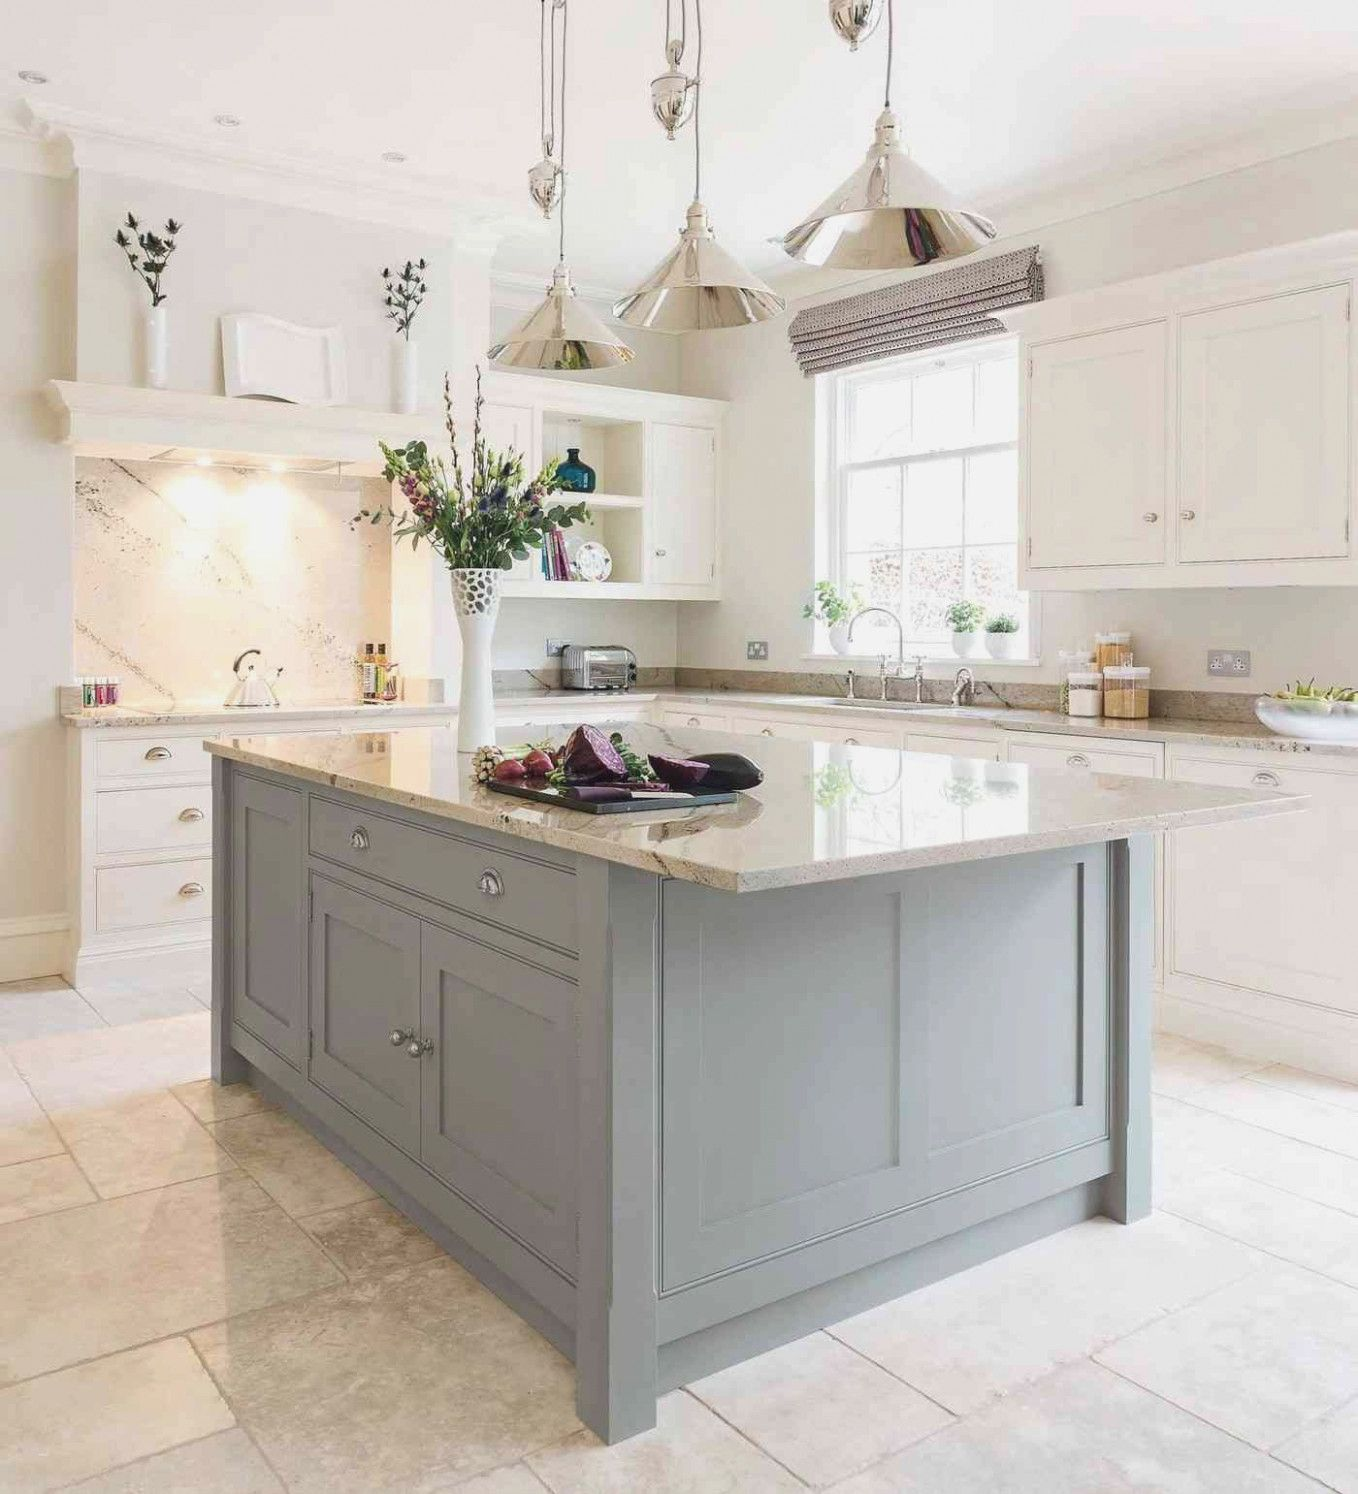 What Is Best Paint For Kitchen Cabinets: Best White Paint For Kitchen Cabinets Behr Unique Kitchen